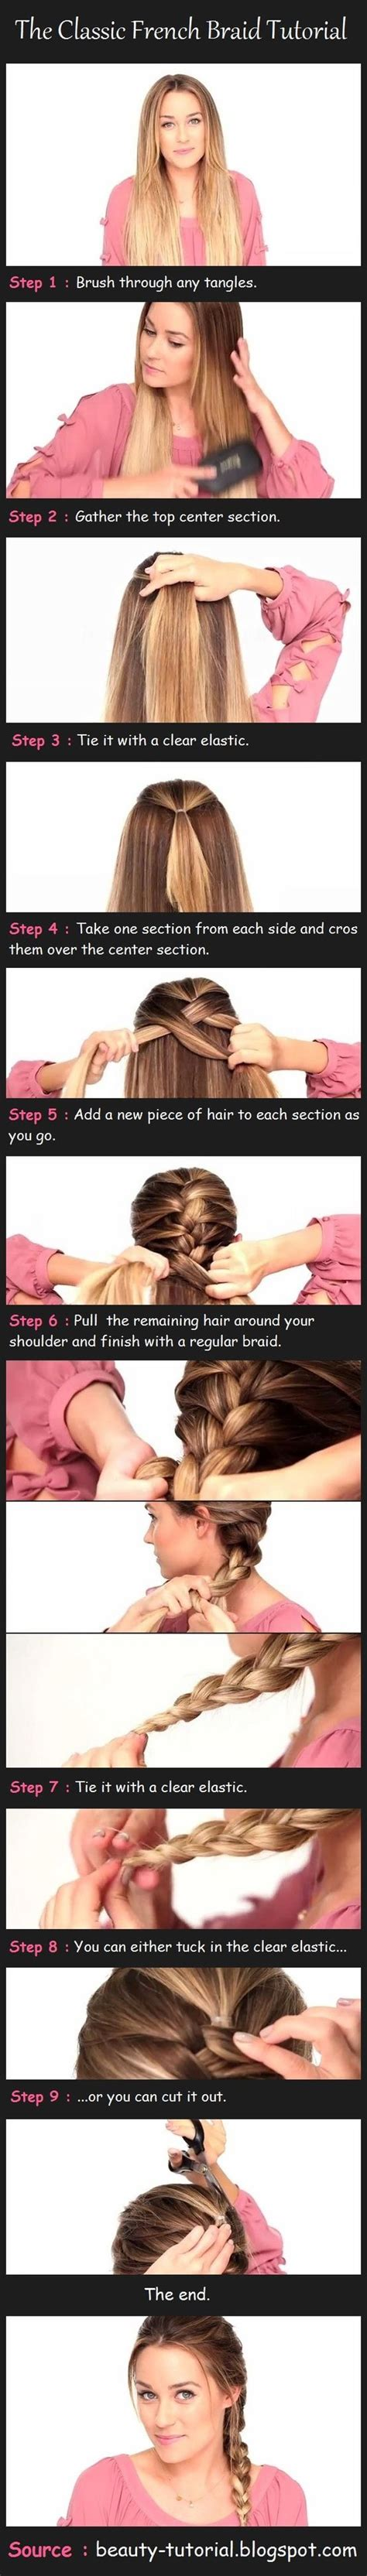 diy hairstyles for dummies the classic french braid tutorial pictures photos and